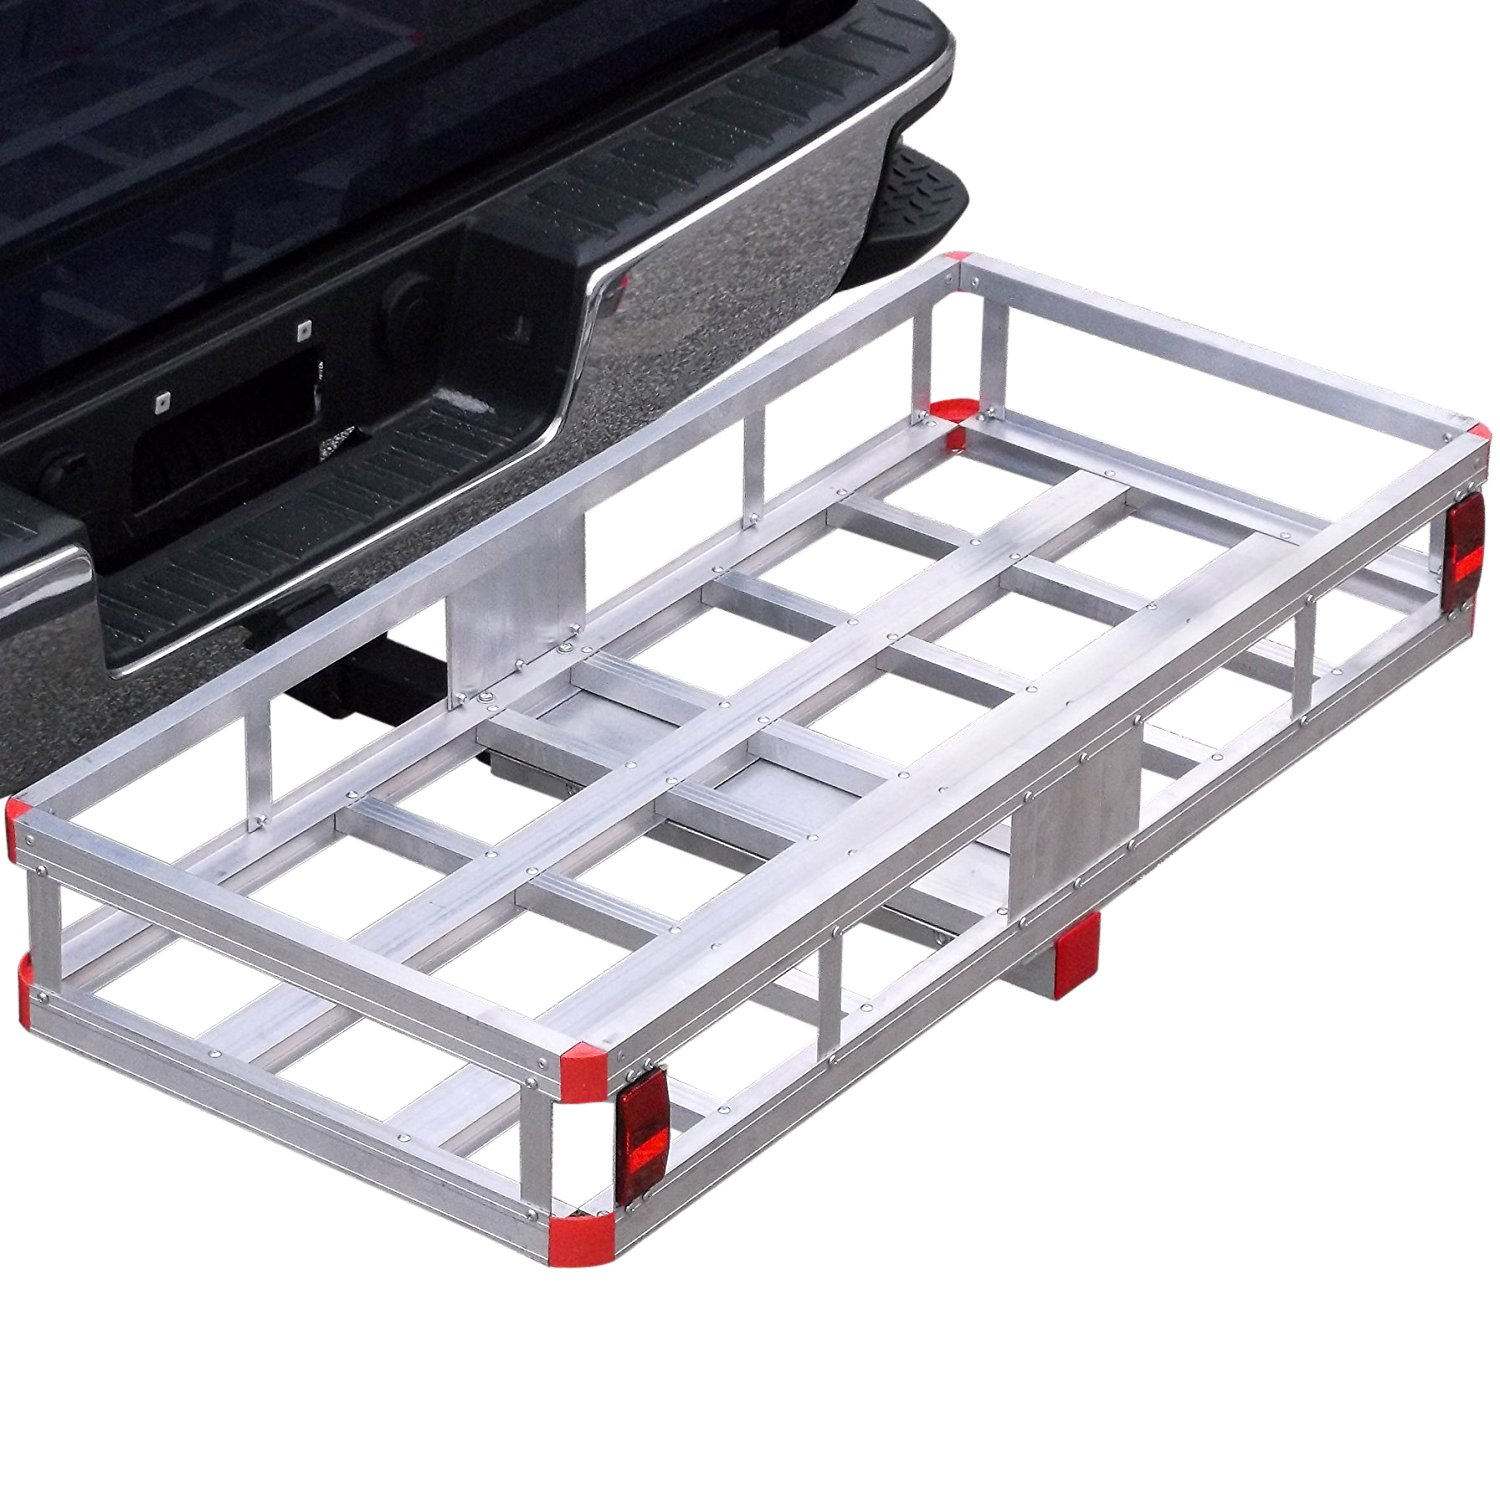 Bumper Hitch Cargo Carrier Basket 500lb Capacity for 2'' Reveiver with Hitch Pin for Truck SUV Van Car by Red Hound Auto